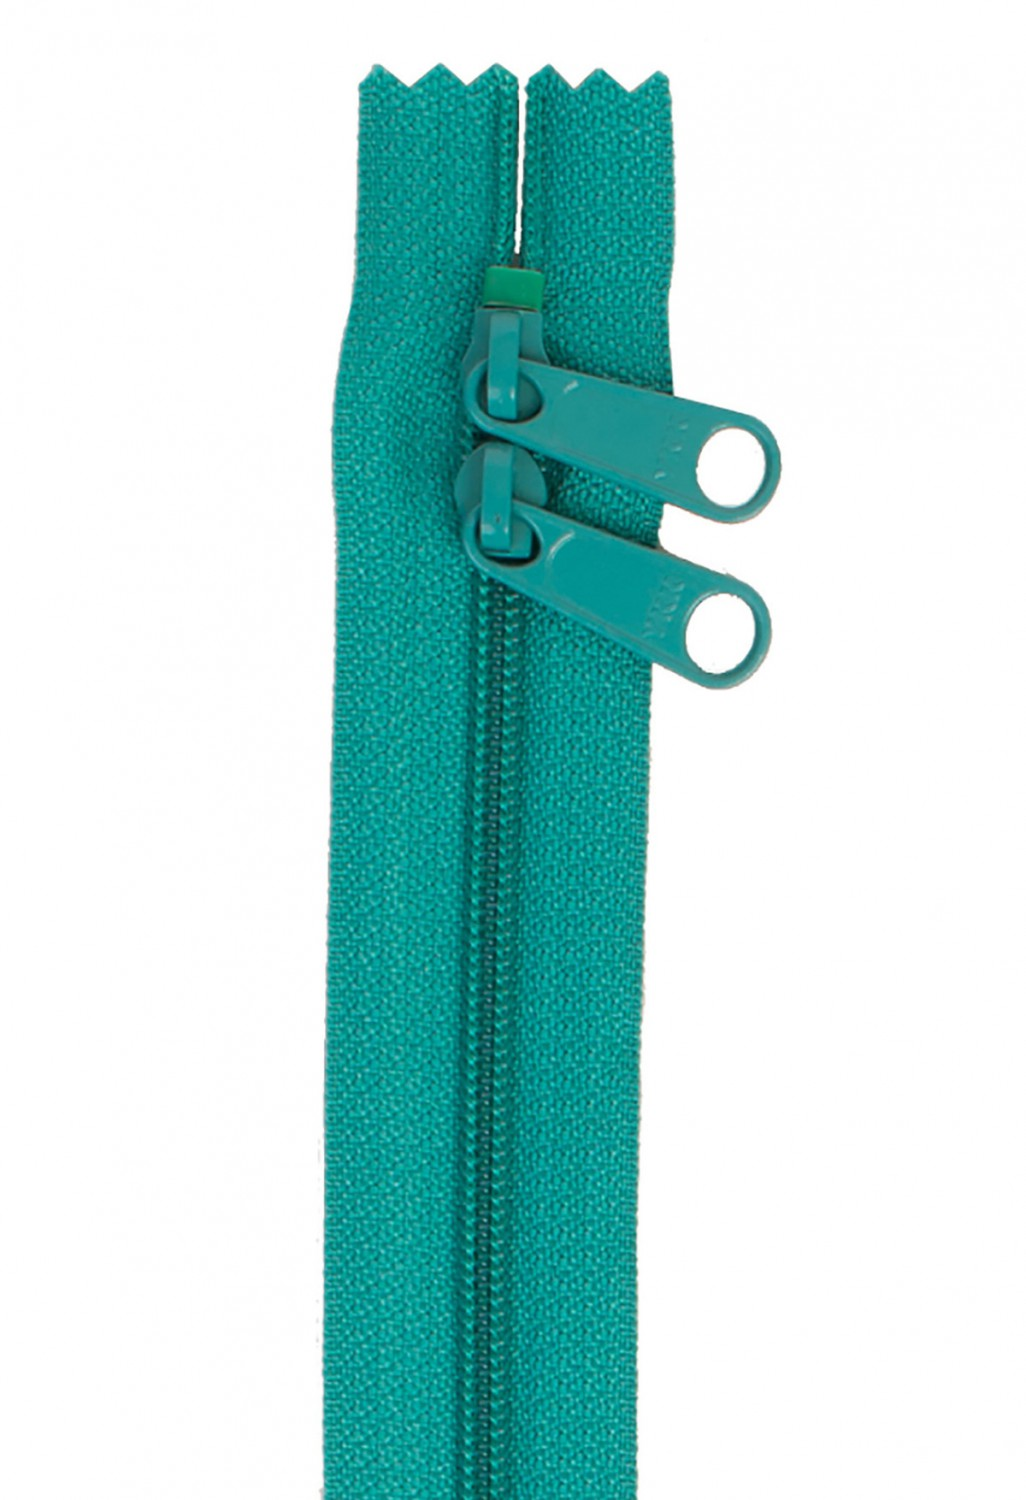 Handbag zipper 30inch-emerald 204